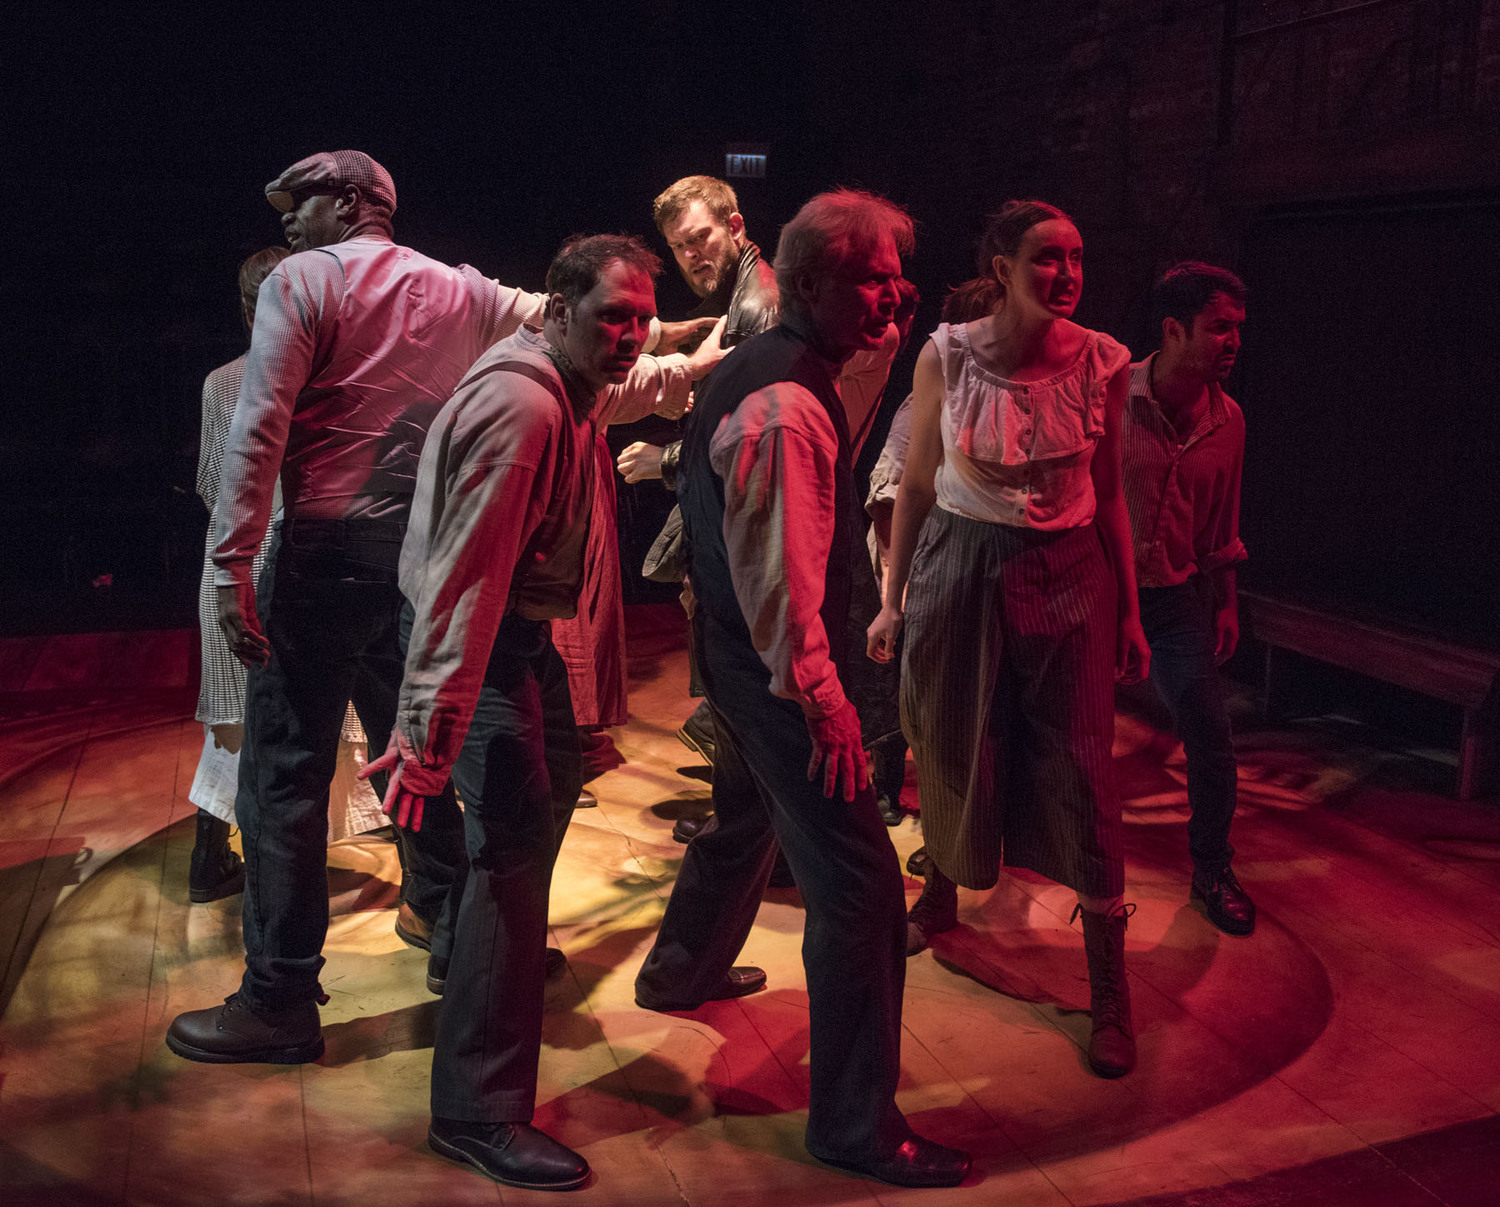 BWW Review: CRIME AND PUNISHMENT at Shattered Globe Theatre